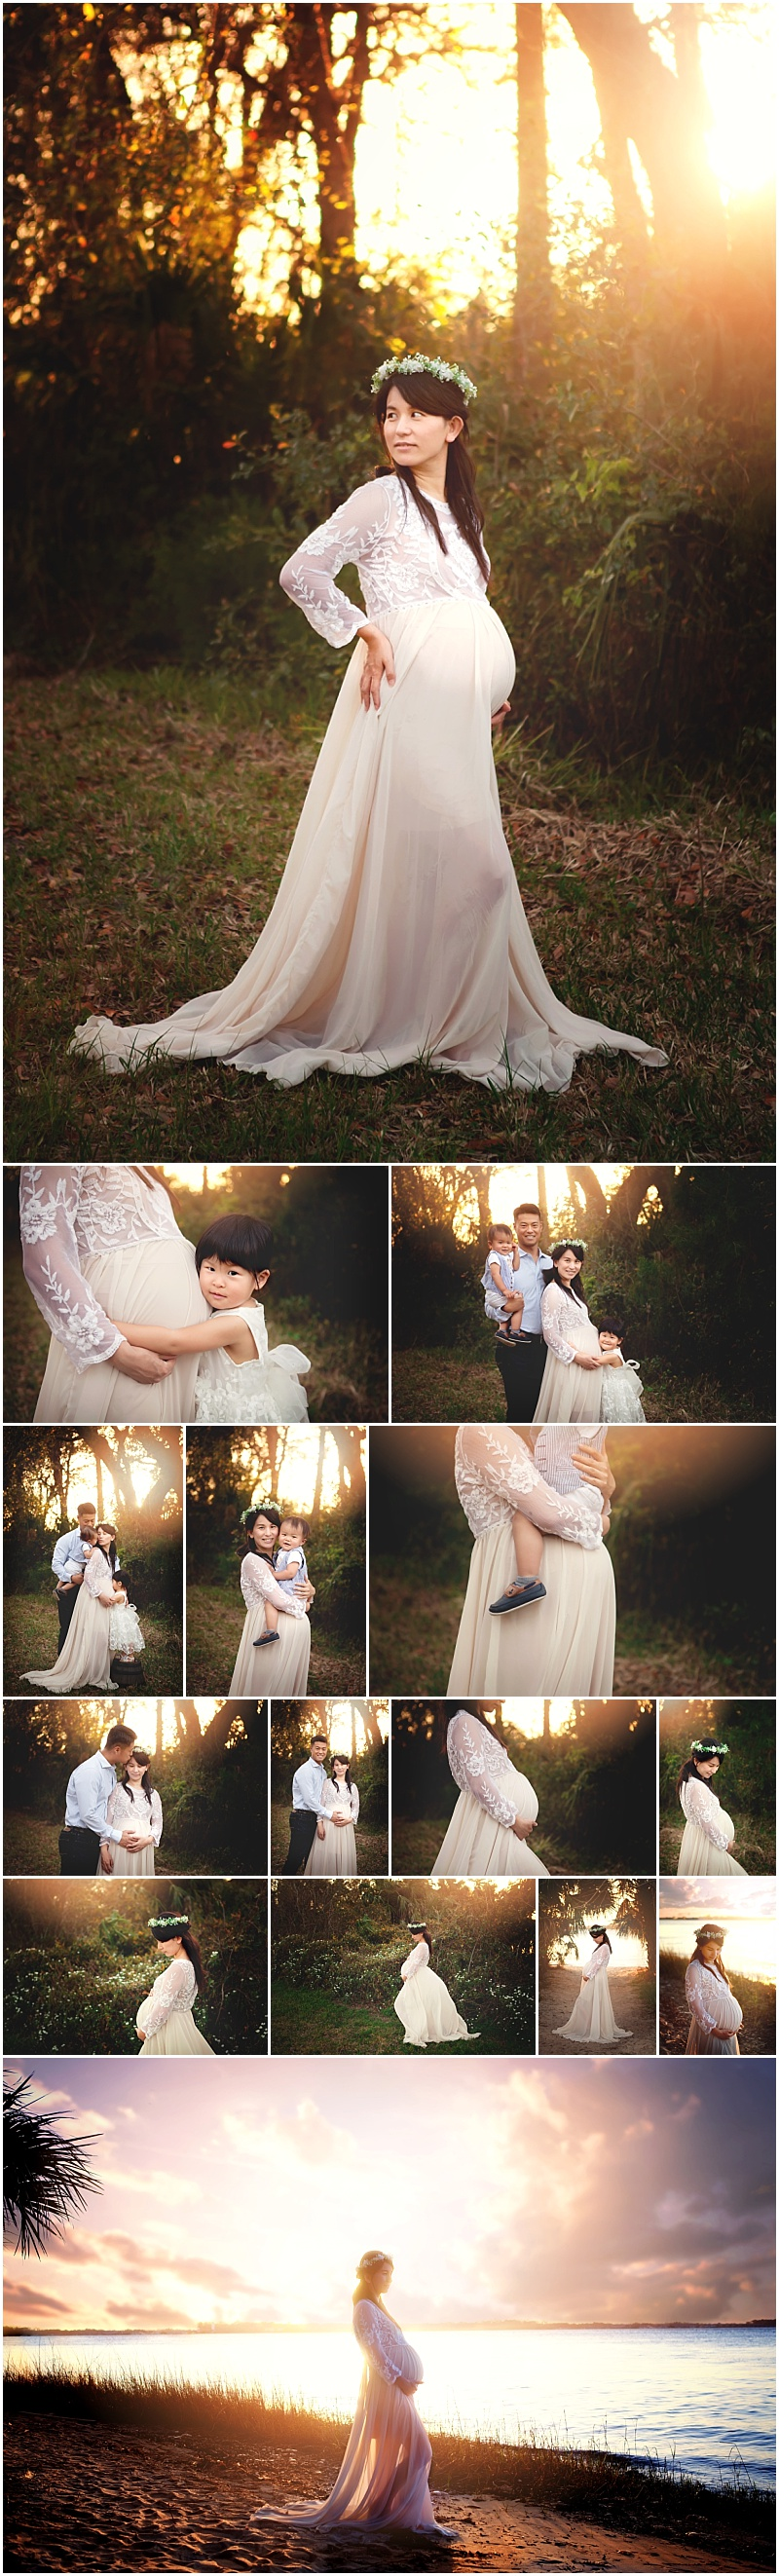 Jax Maternity Photographer